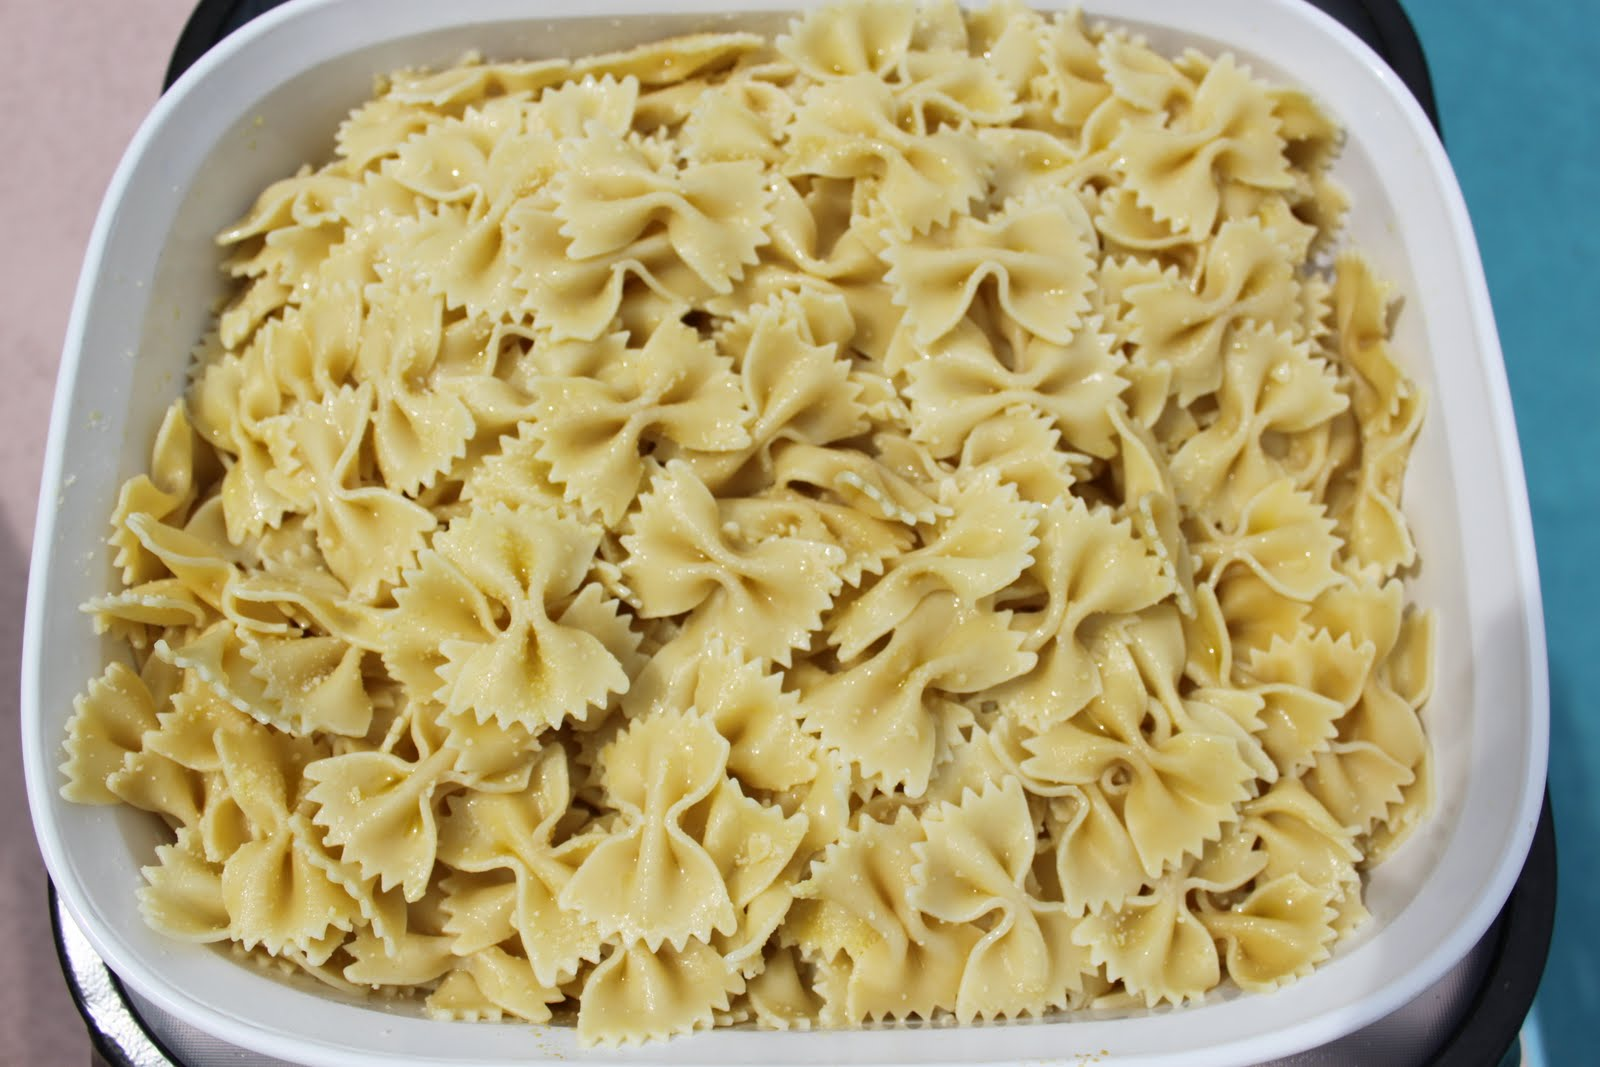 Bow Tie Pasta boiled in salted water al dente'.